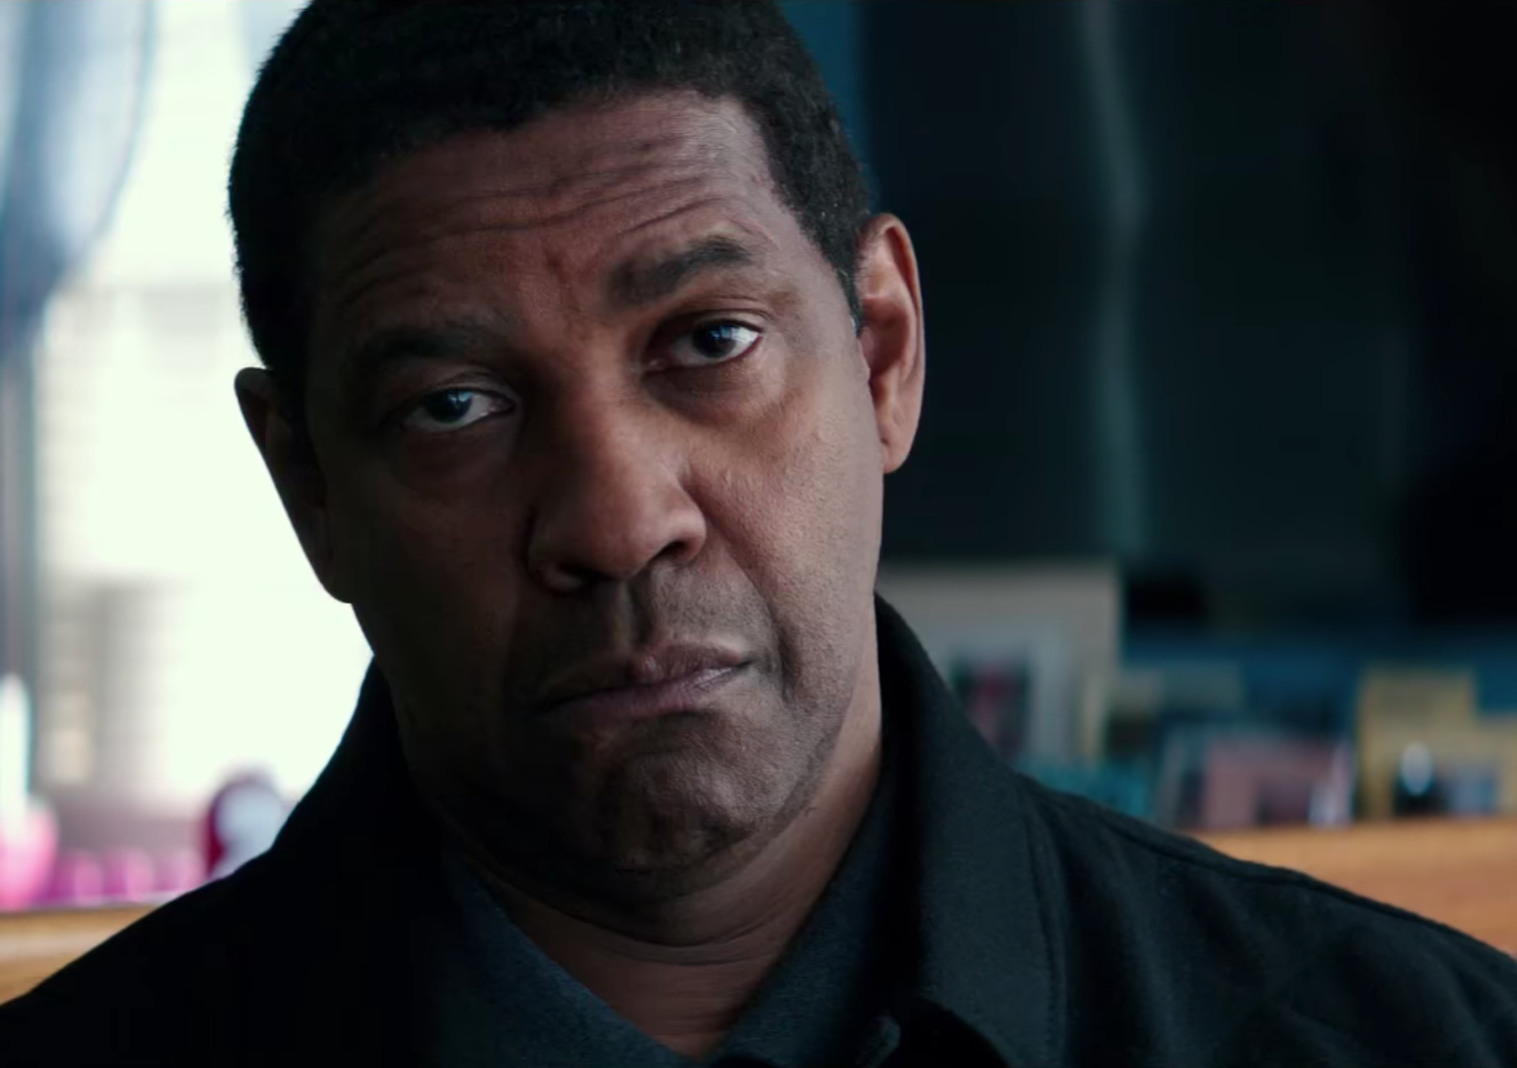 Denzel Washington Brings the Pain in 'The Equalizer 2' Trailer